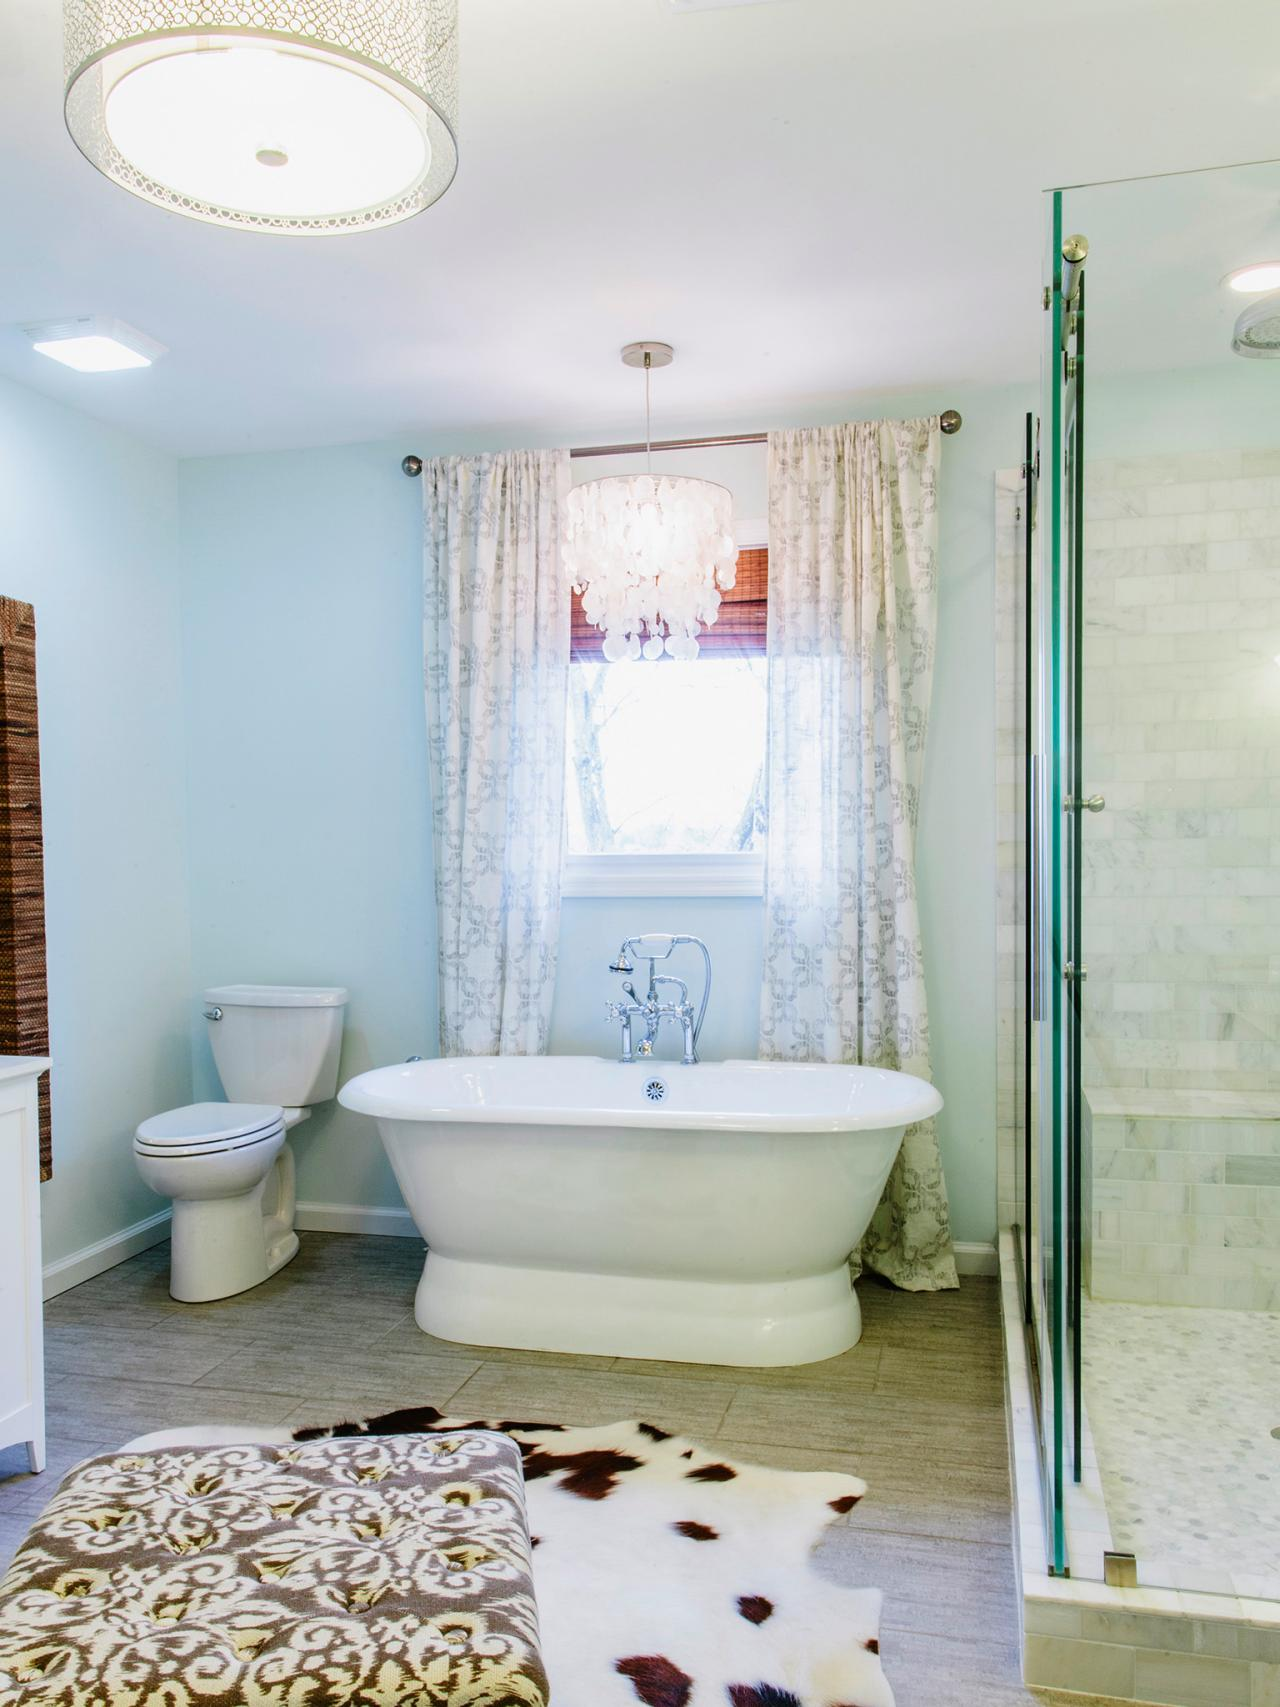 Freestanding Tub Options Pictures Ideas Amp Tips From Hgtv